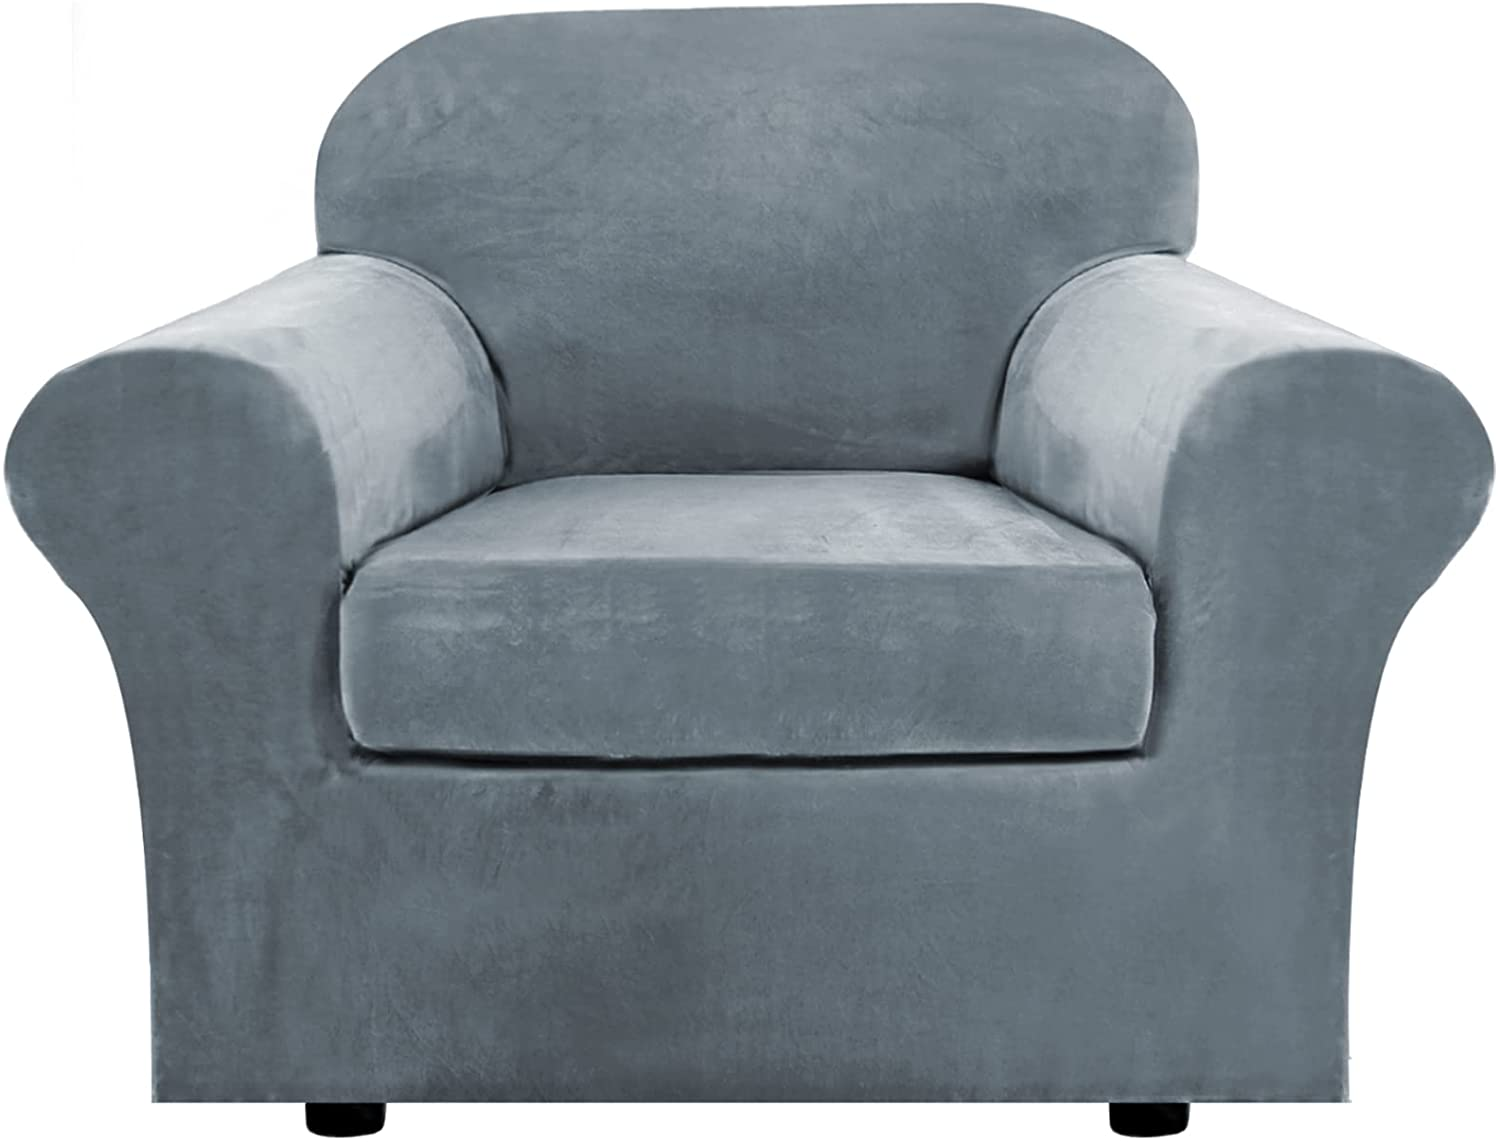 Rich Velvet Stretch 2 Piece Chair Cover Chair Slipcover Sofa Cover Furniture Protector Couch Soft with Elastic Bottom Chair Couch Cover with Arms, Machine Washable(Chair, Stone Blue)